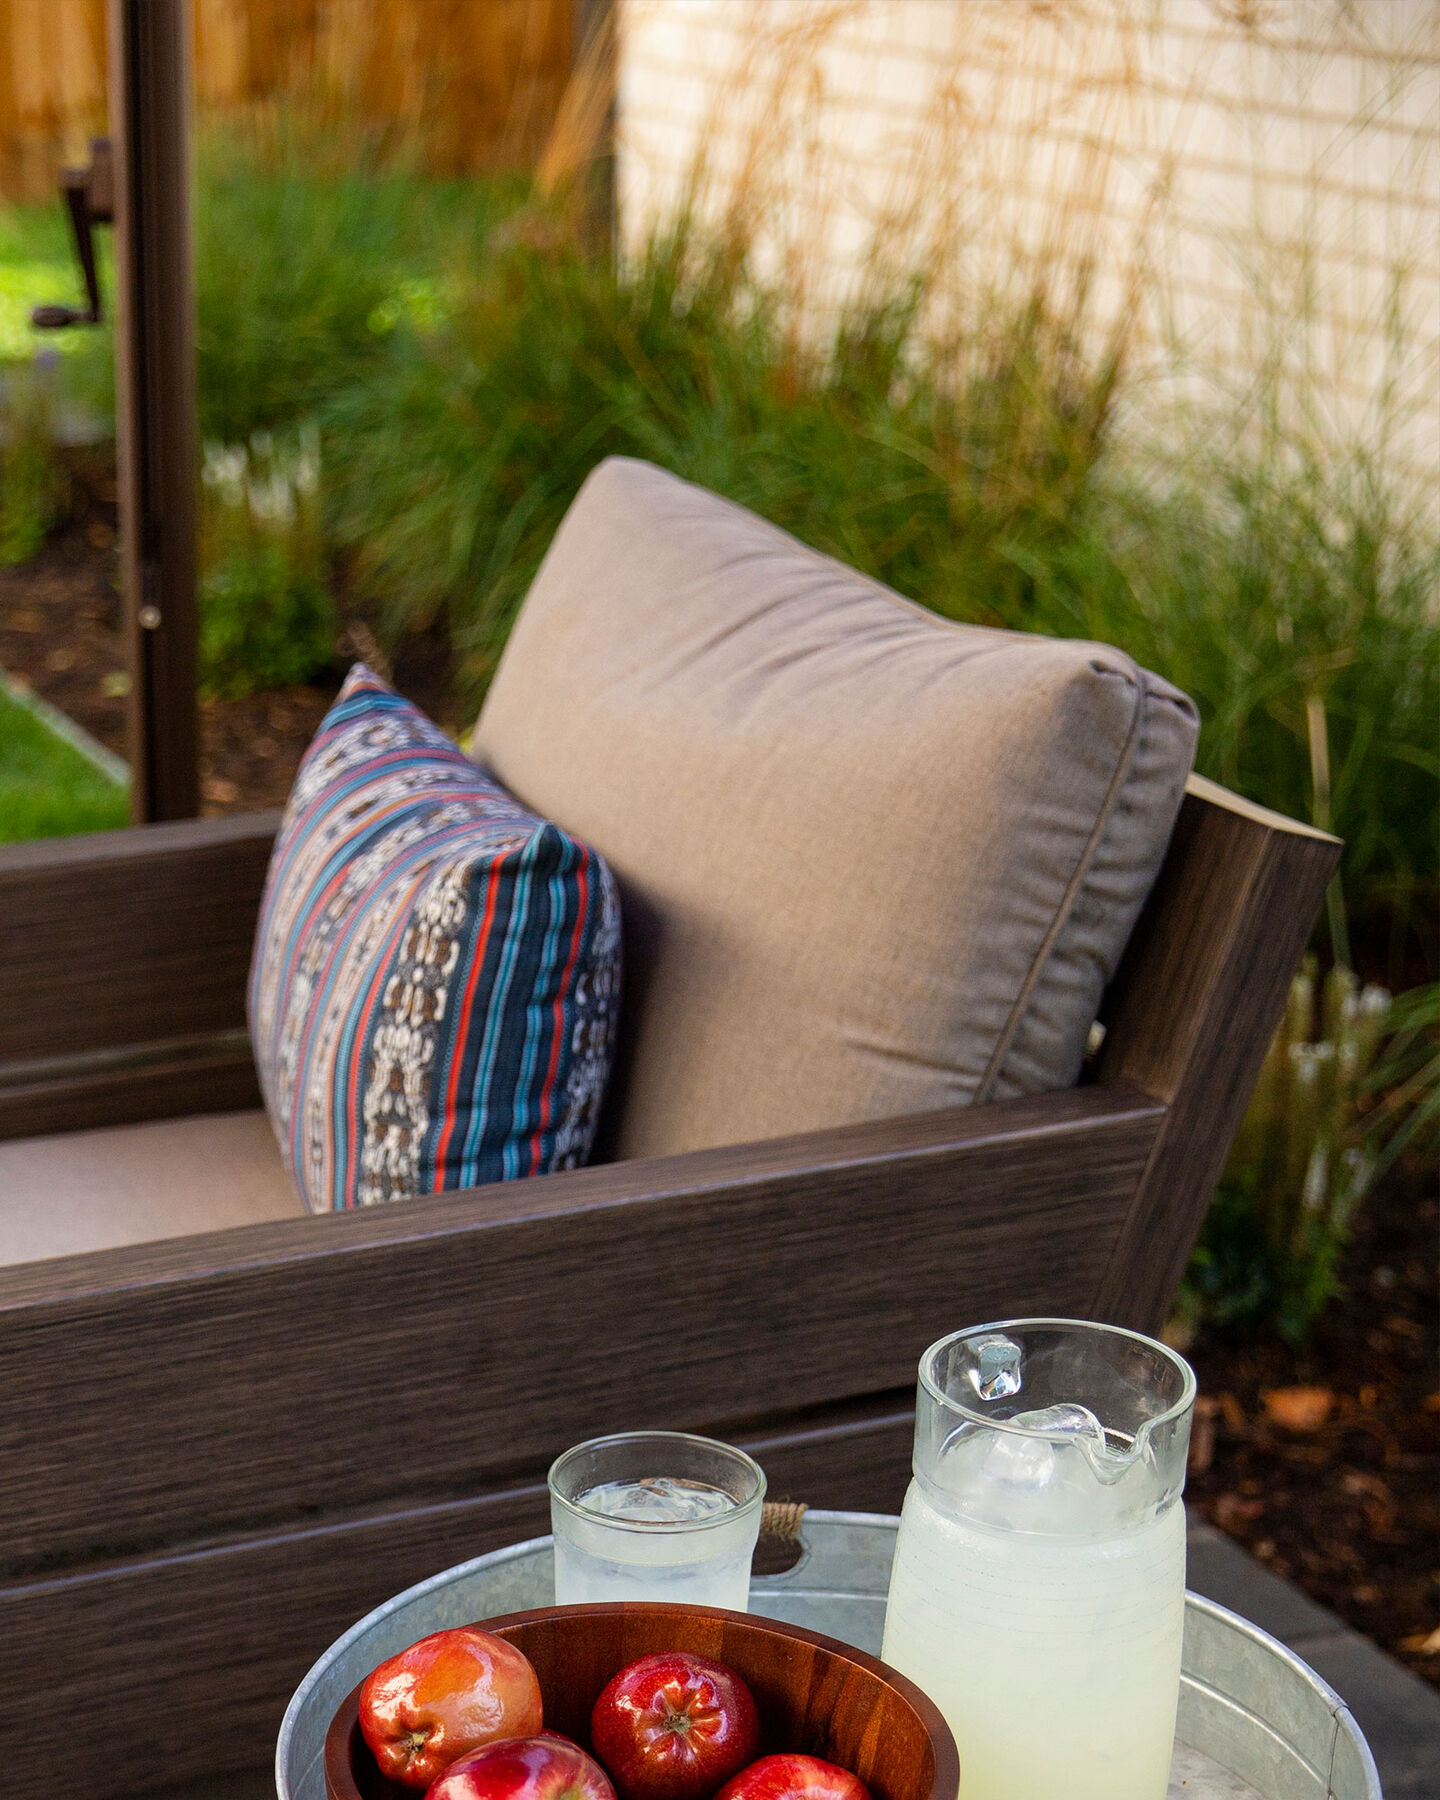 Durable outdoor cushions & pillows with Sunbrella fabric